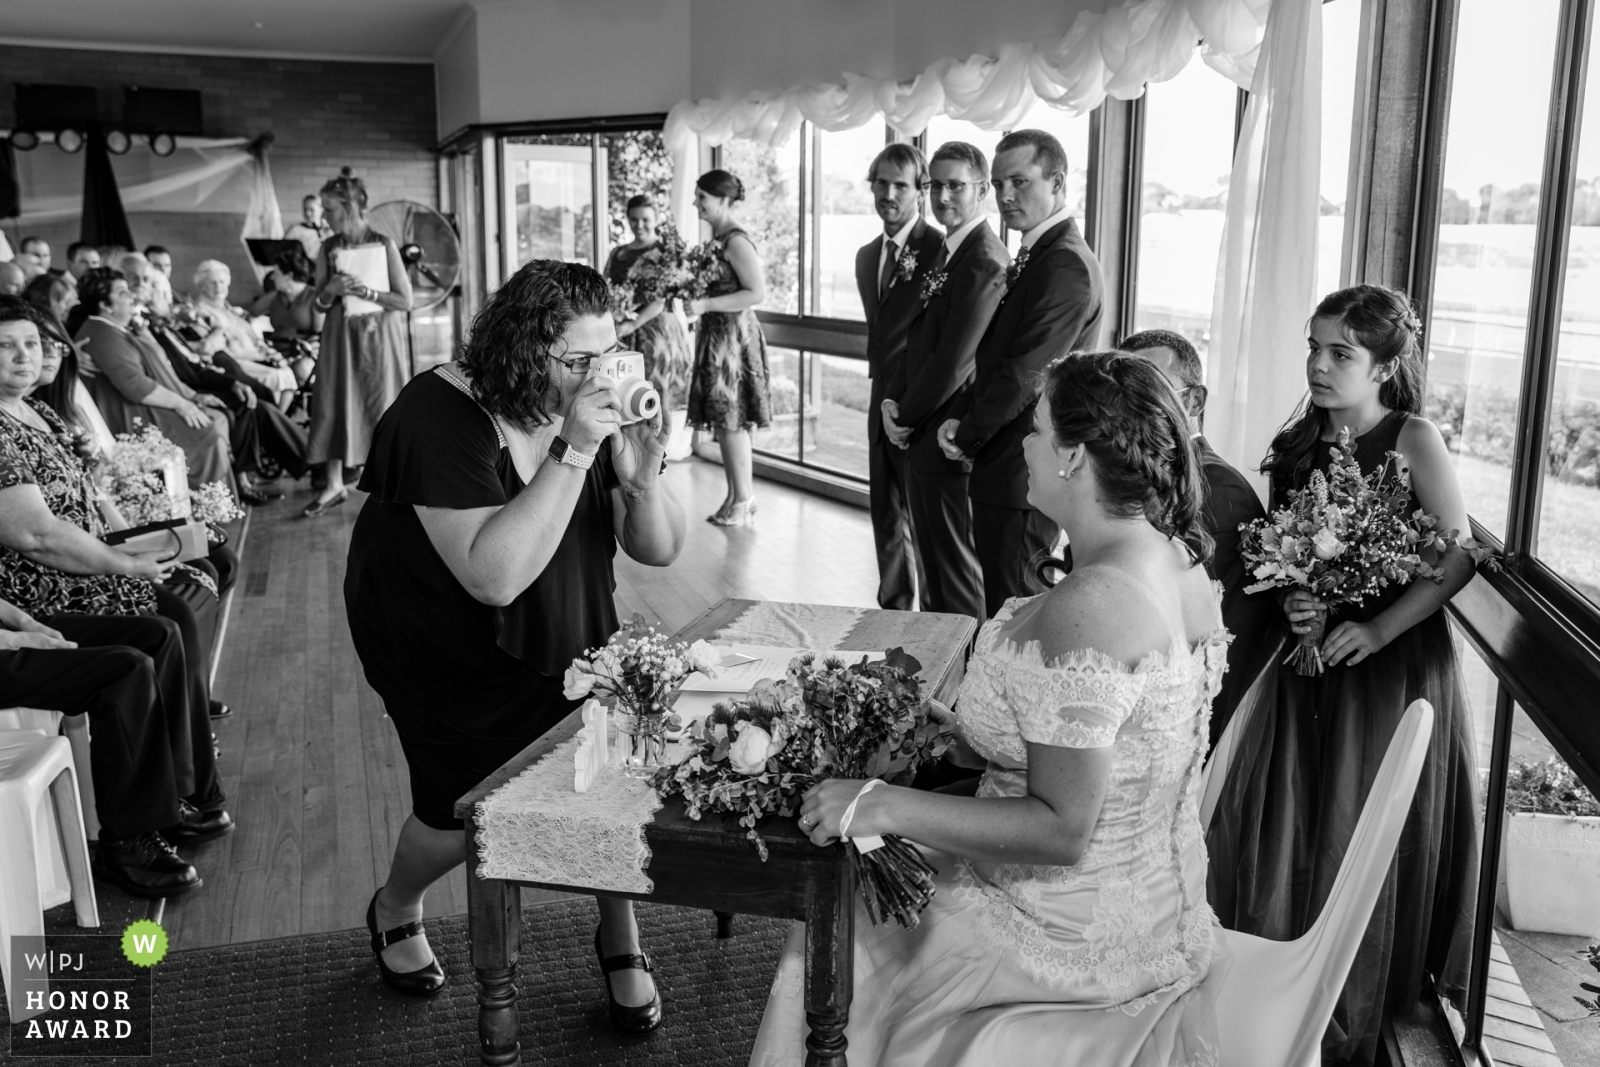 wedding-guest-takes-a-photo